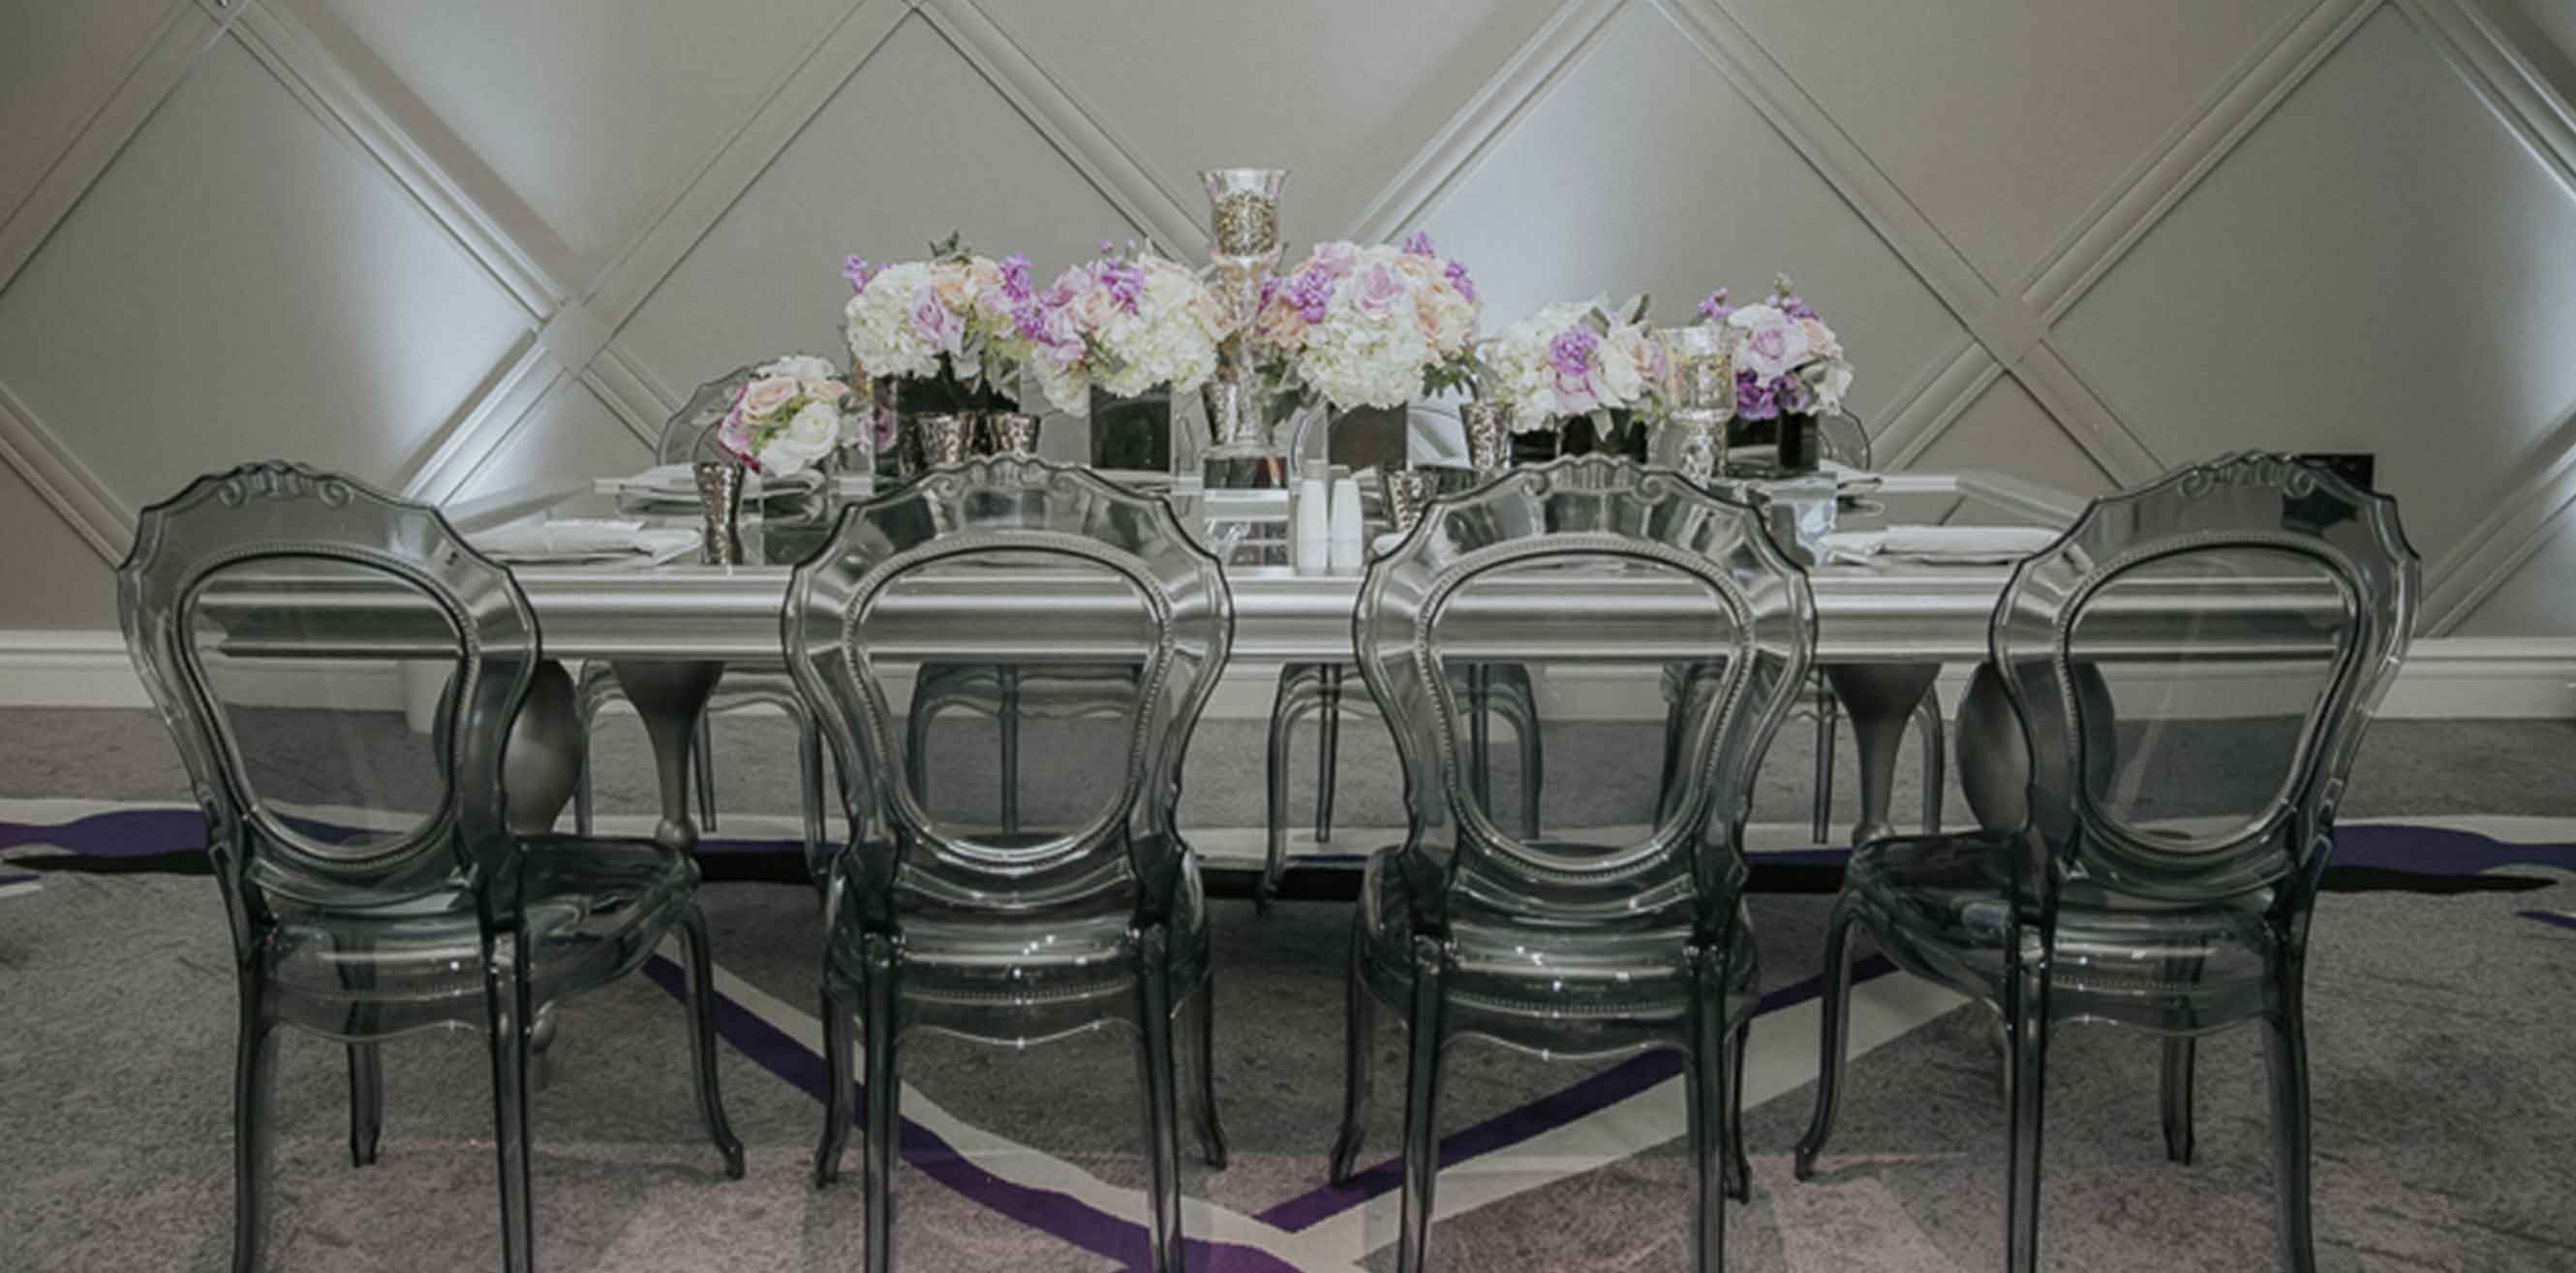 Clear, smoky chairs